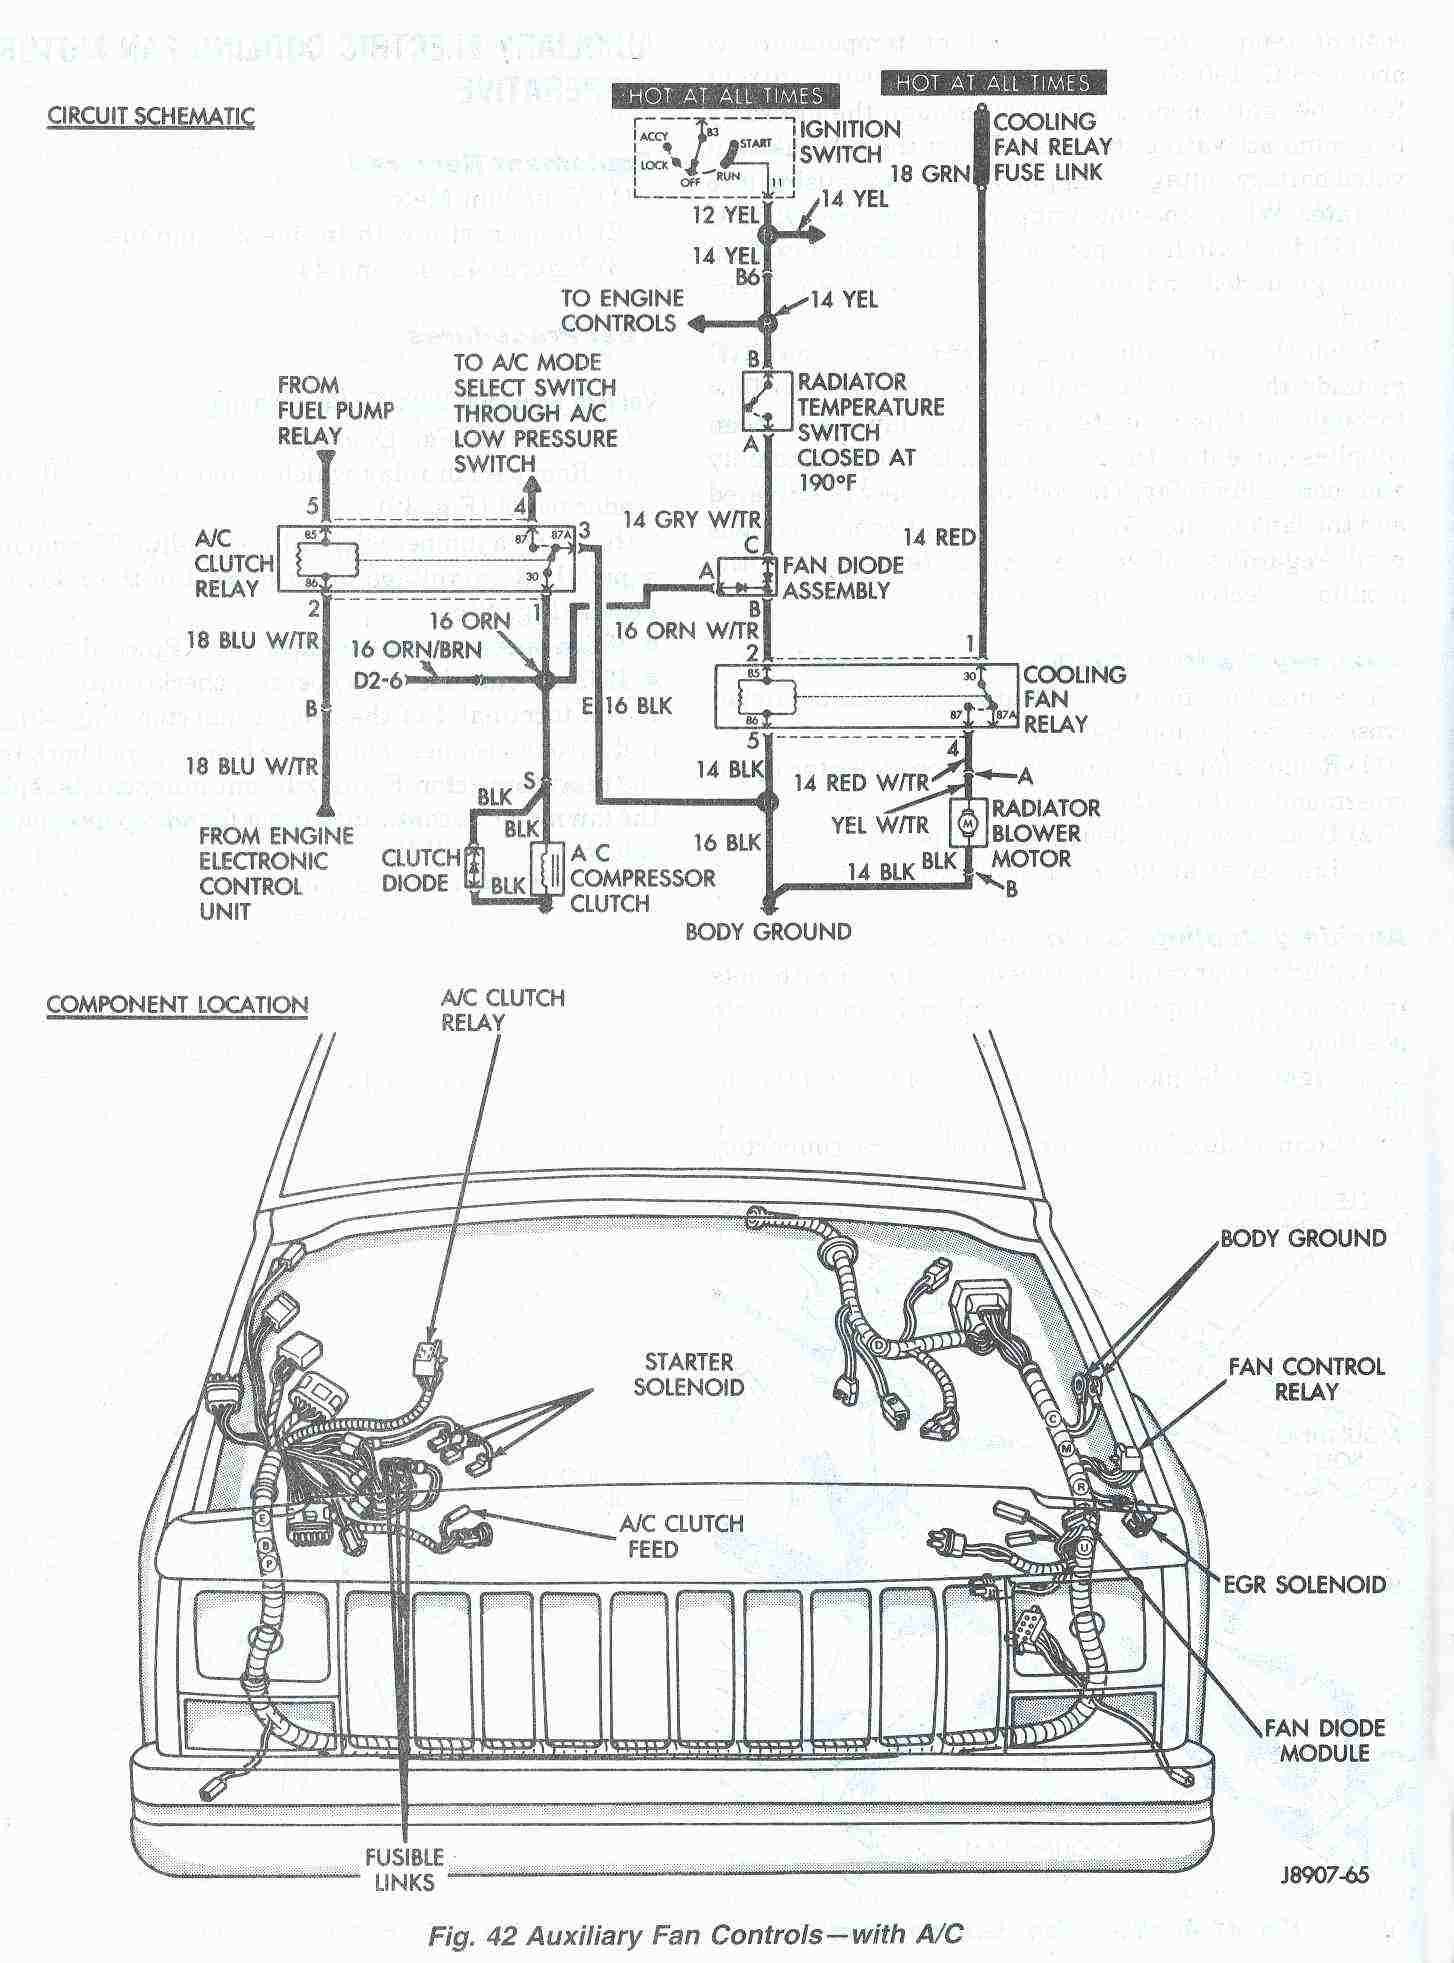 e8c83109bad6c41d377df8c1cb7a8dc4 at the asd relay if vole is not b16 check fuse 20 30 a good there 1999 Jeep Cherokee Serpentine Belt Diagram at cos-gaming.co